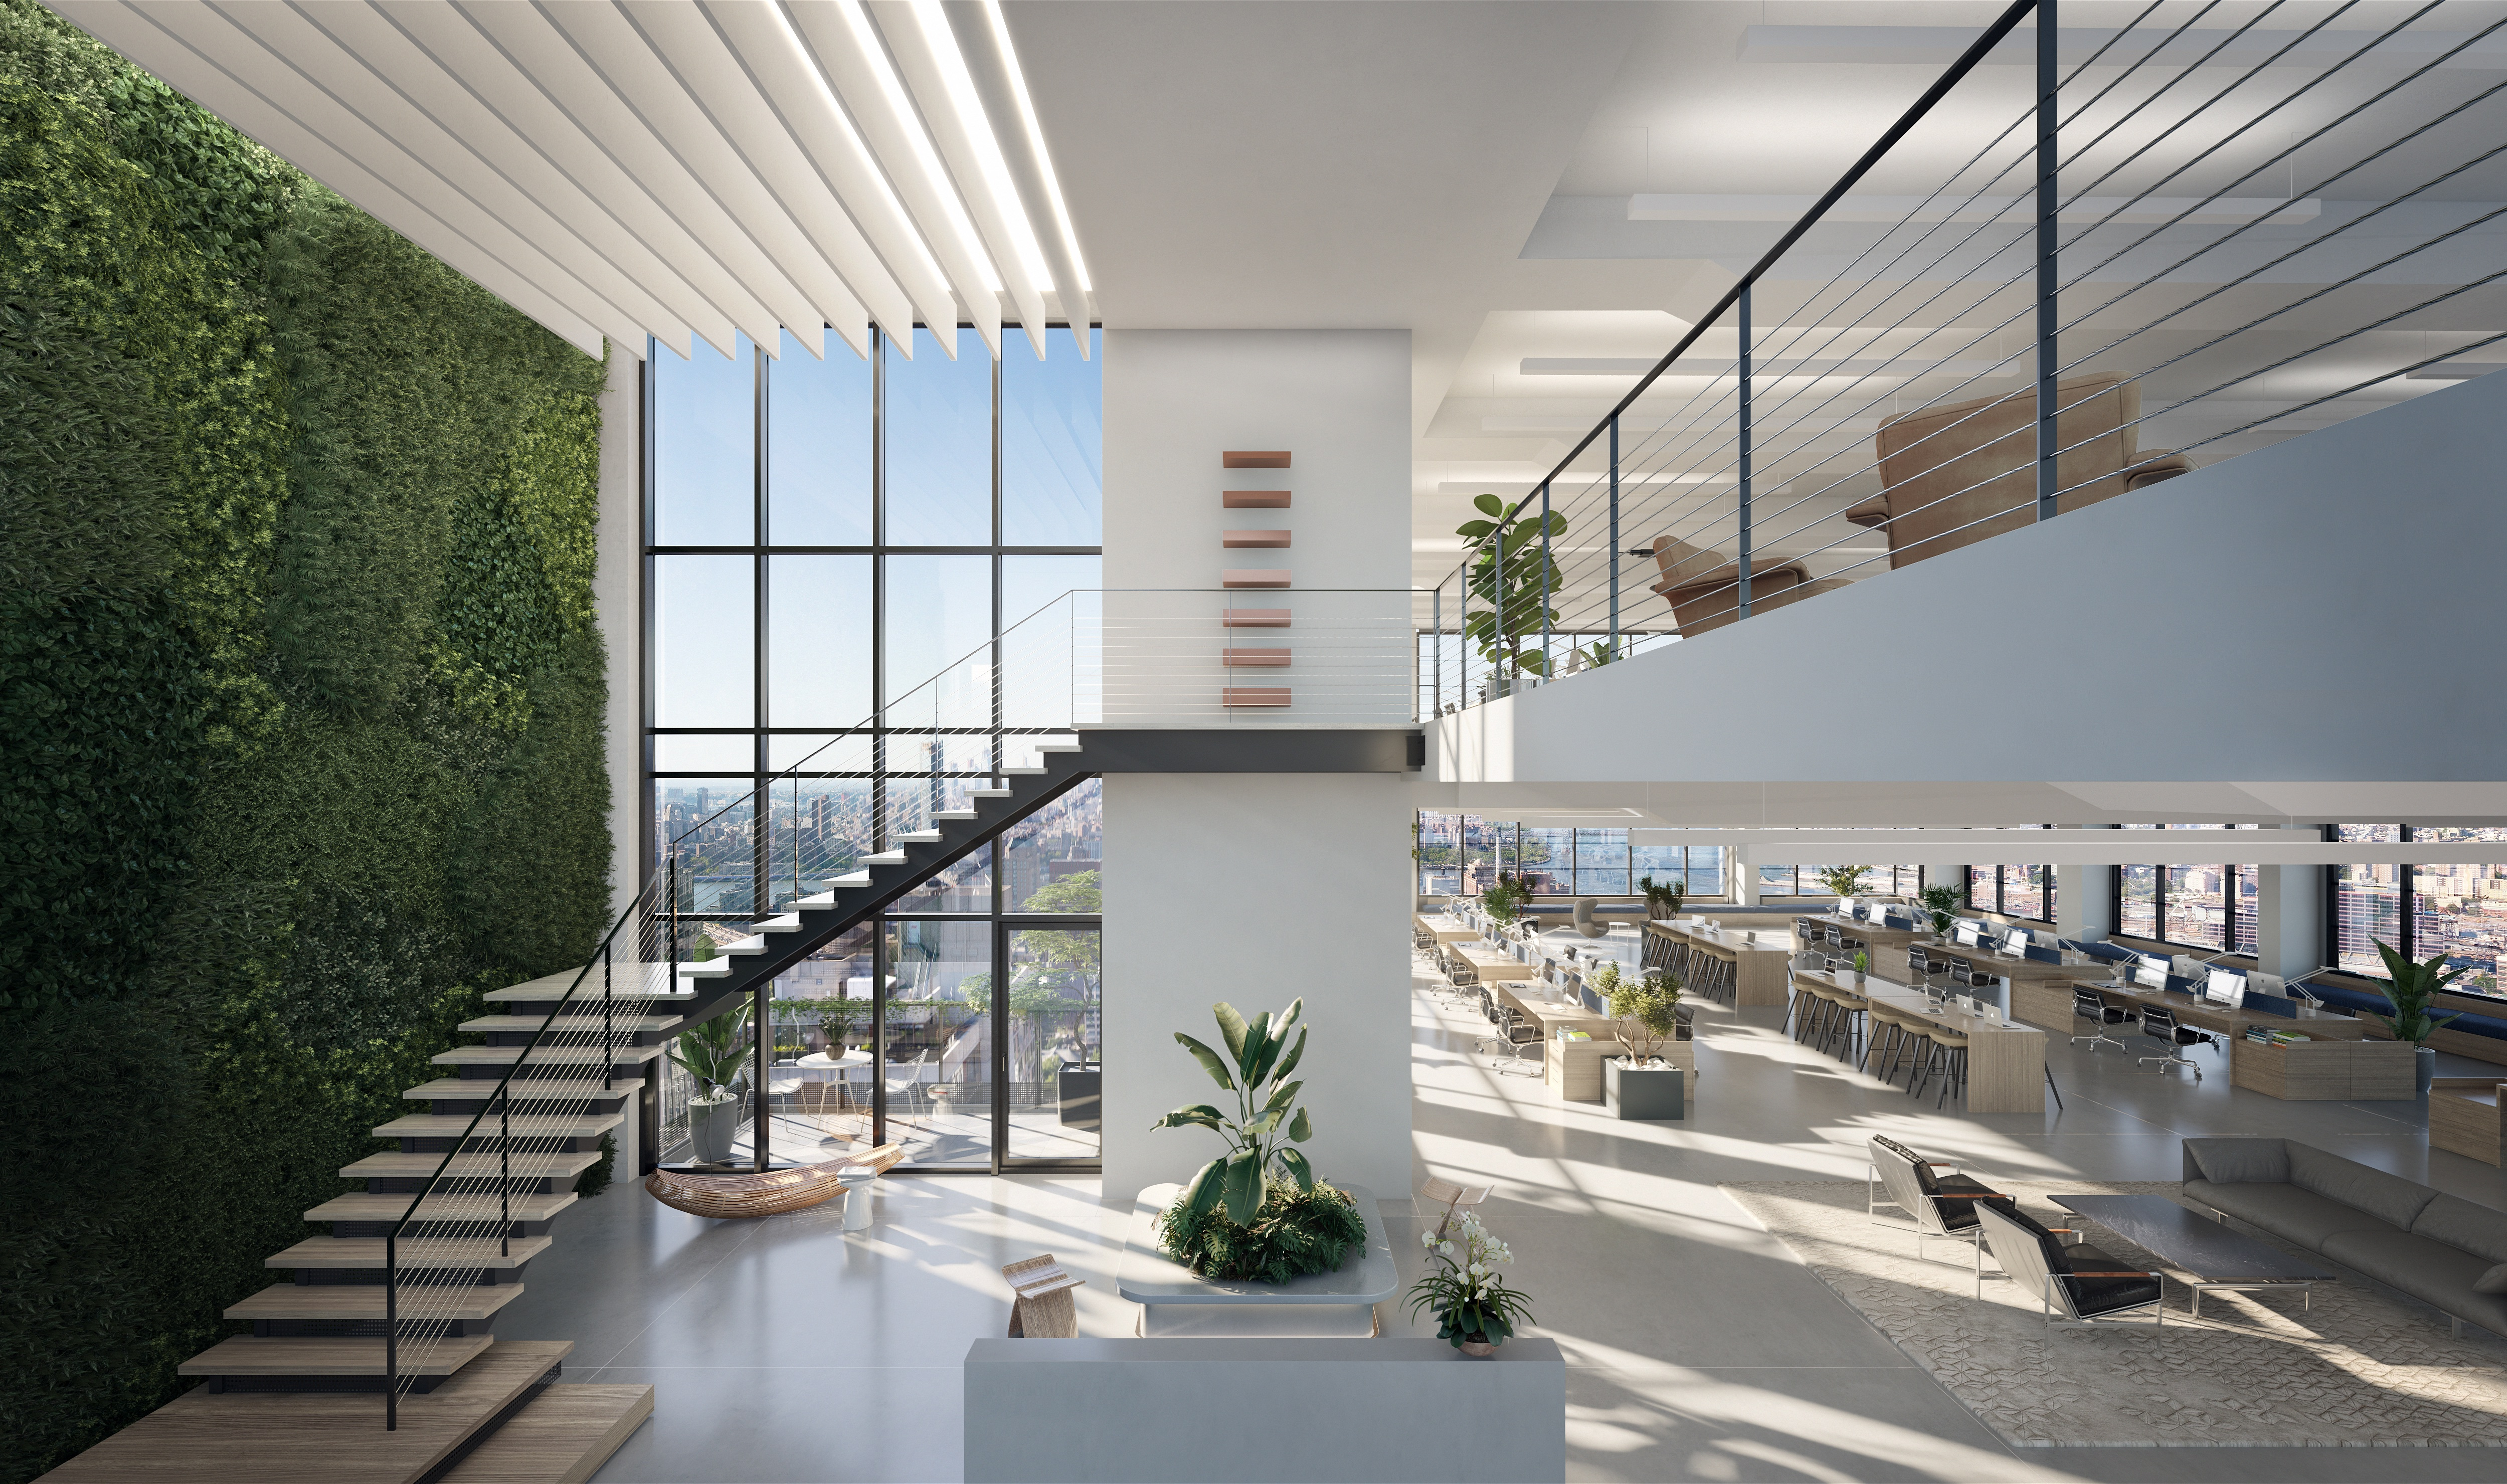 An office space with a large staircase large windows, and a wall filled with plants.